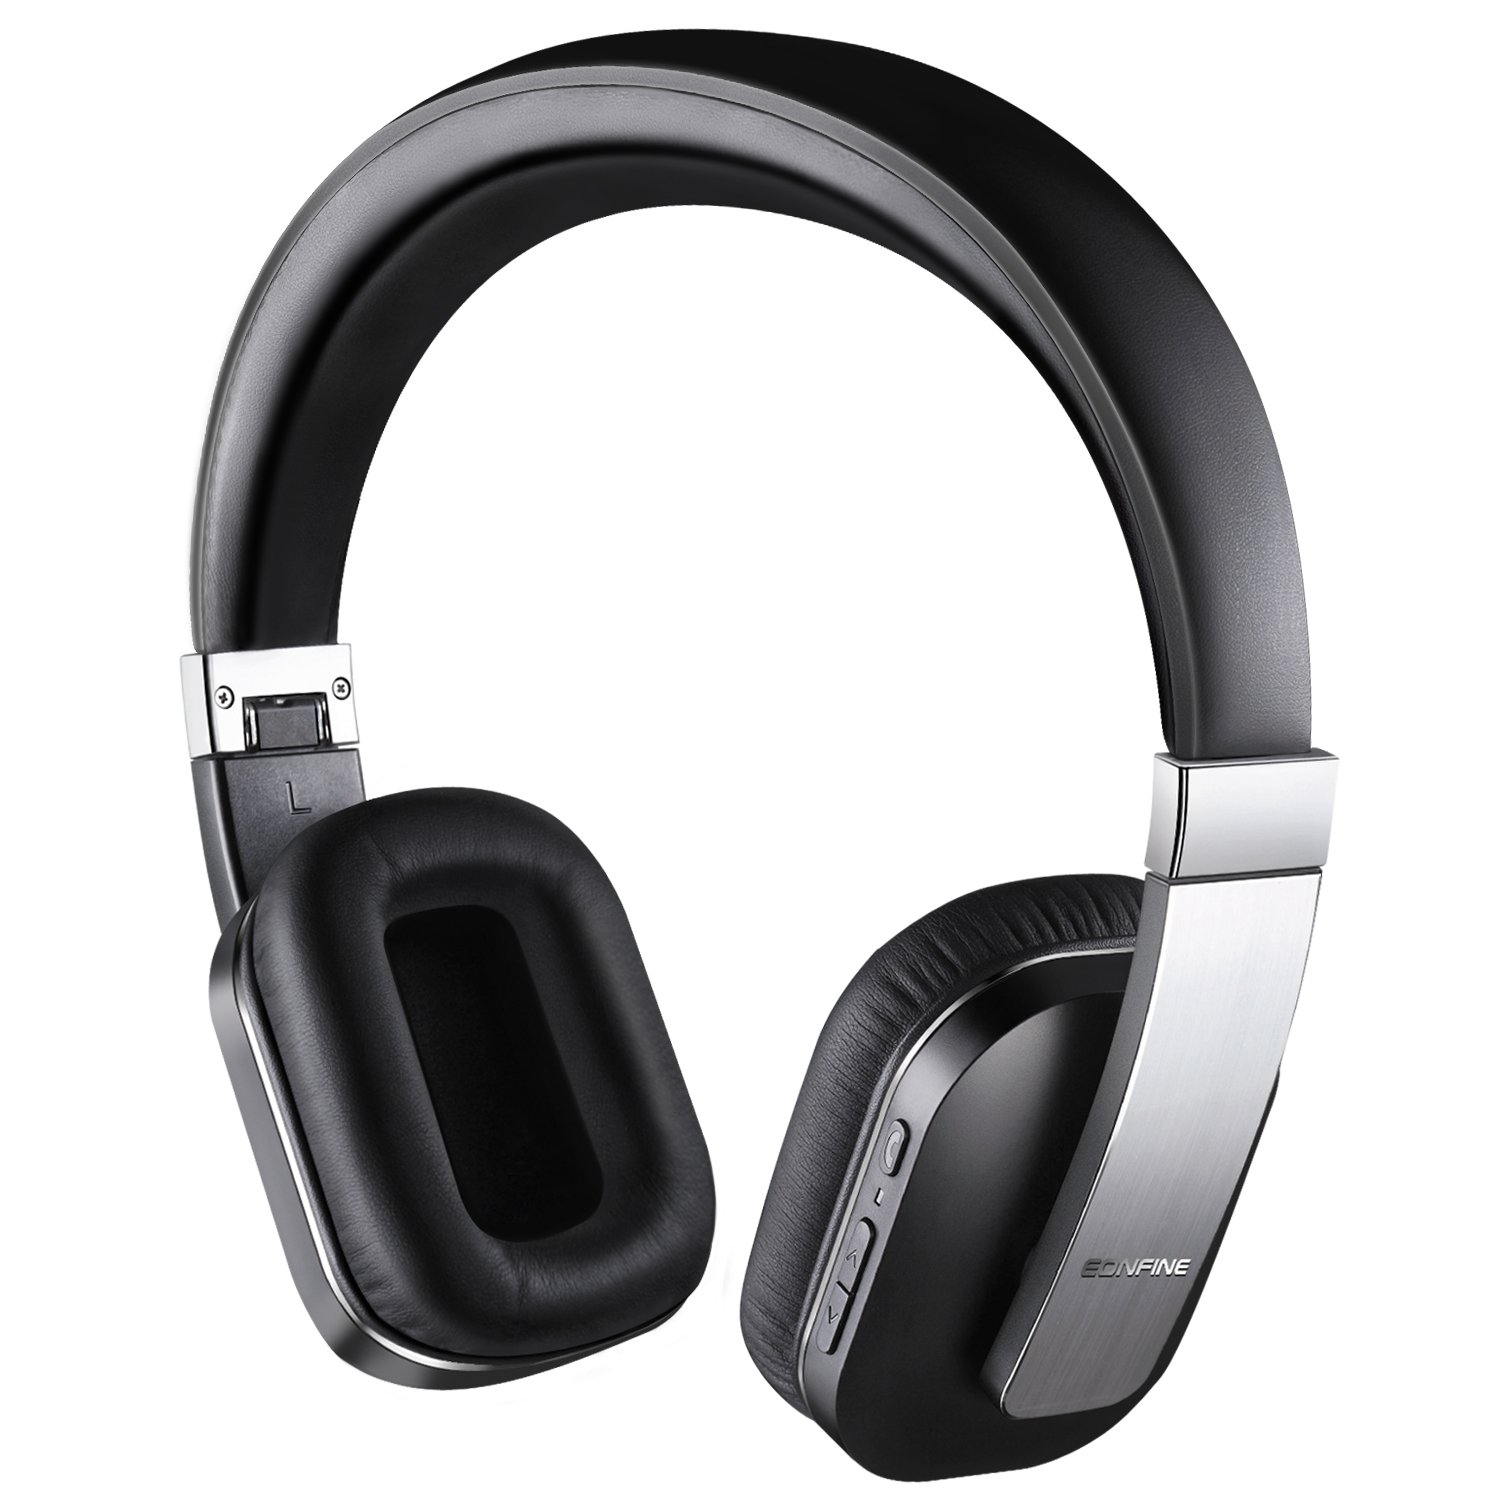 Eonfine Wireless Bluetooth Active Noise Canceling Headphones